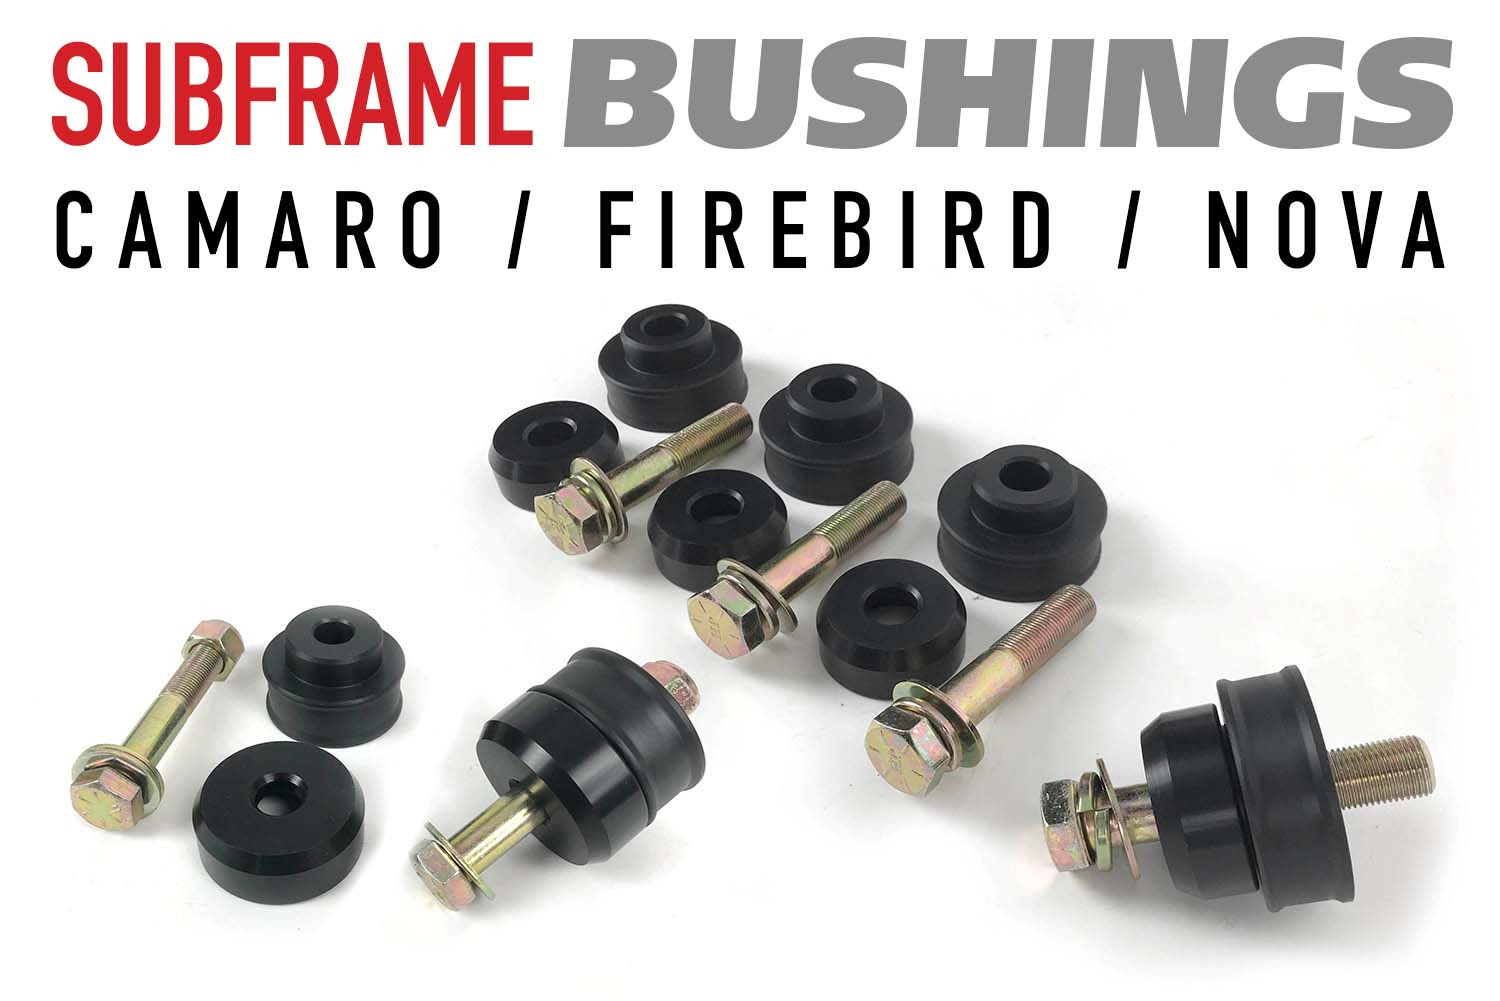 Ridetech's New Subframe Bushing Kits For Camaro, Firebird, And Nova Are The Perfect Fit For Your Project